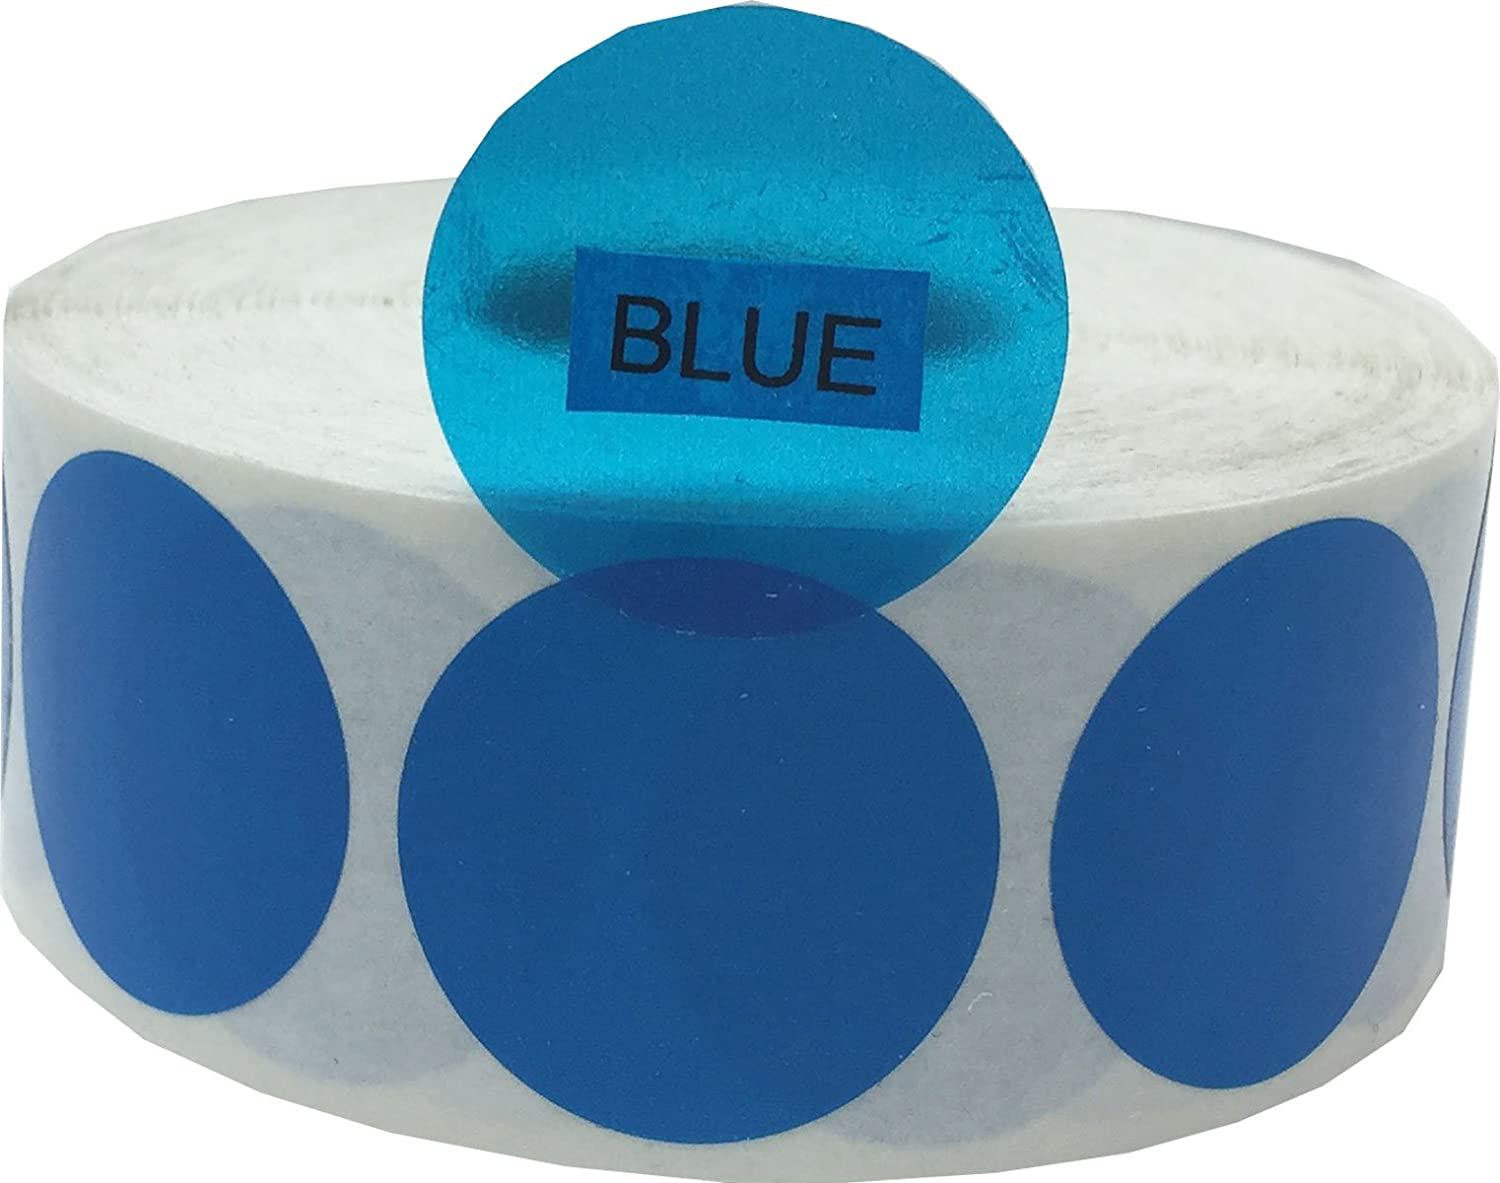 Transparent Blue Color Coding Industry No. 1 Labels Japan's largest assortment Inventory Organizing for